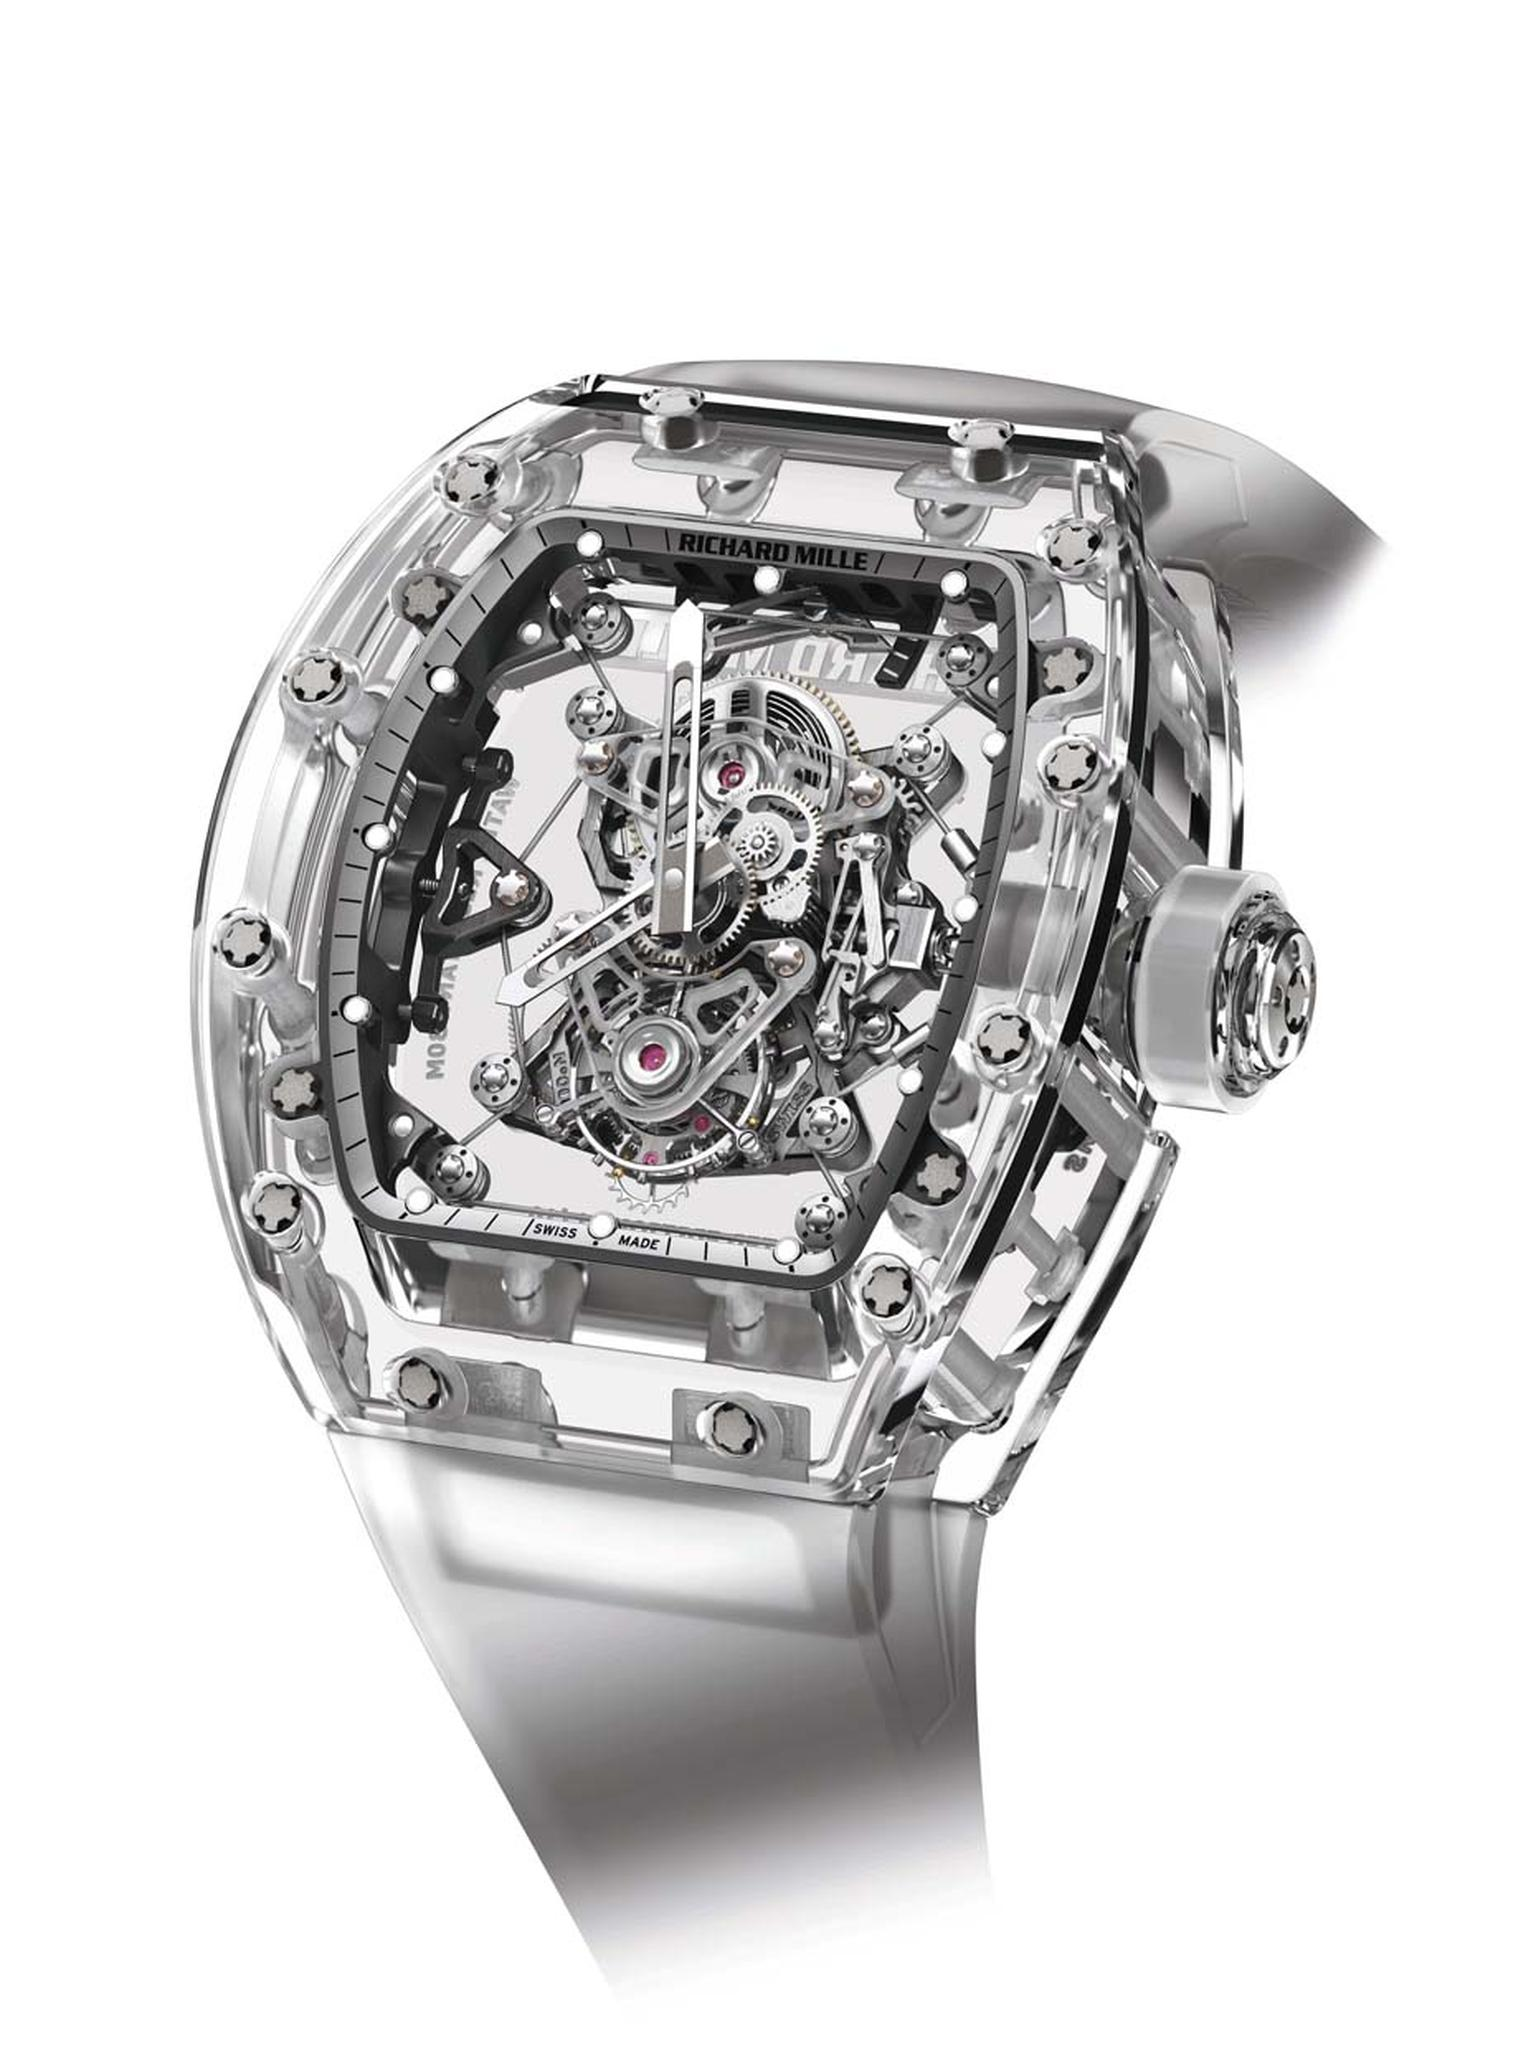 Richard Mille's $2 million RM56-02 Sapphire Tourbillon features a transparent case made from sapphire crystal